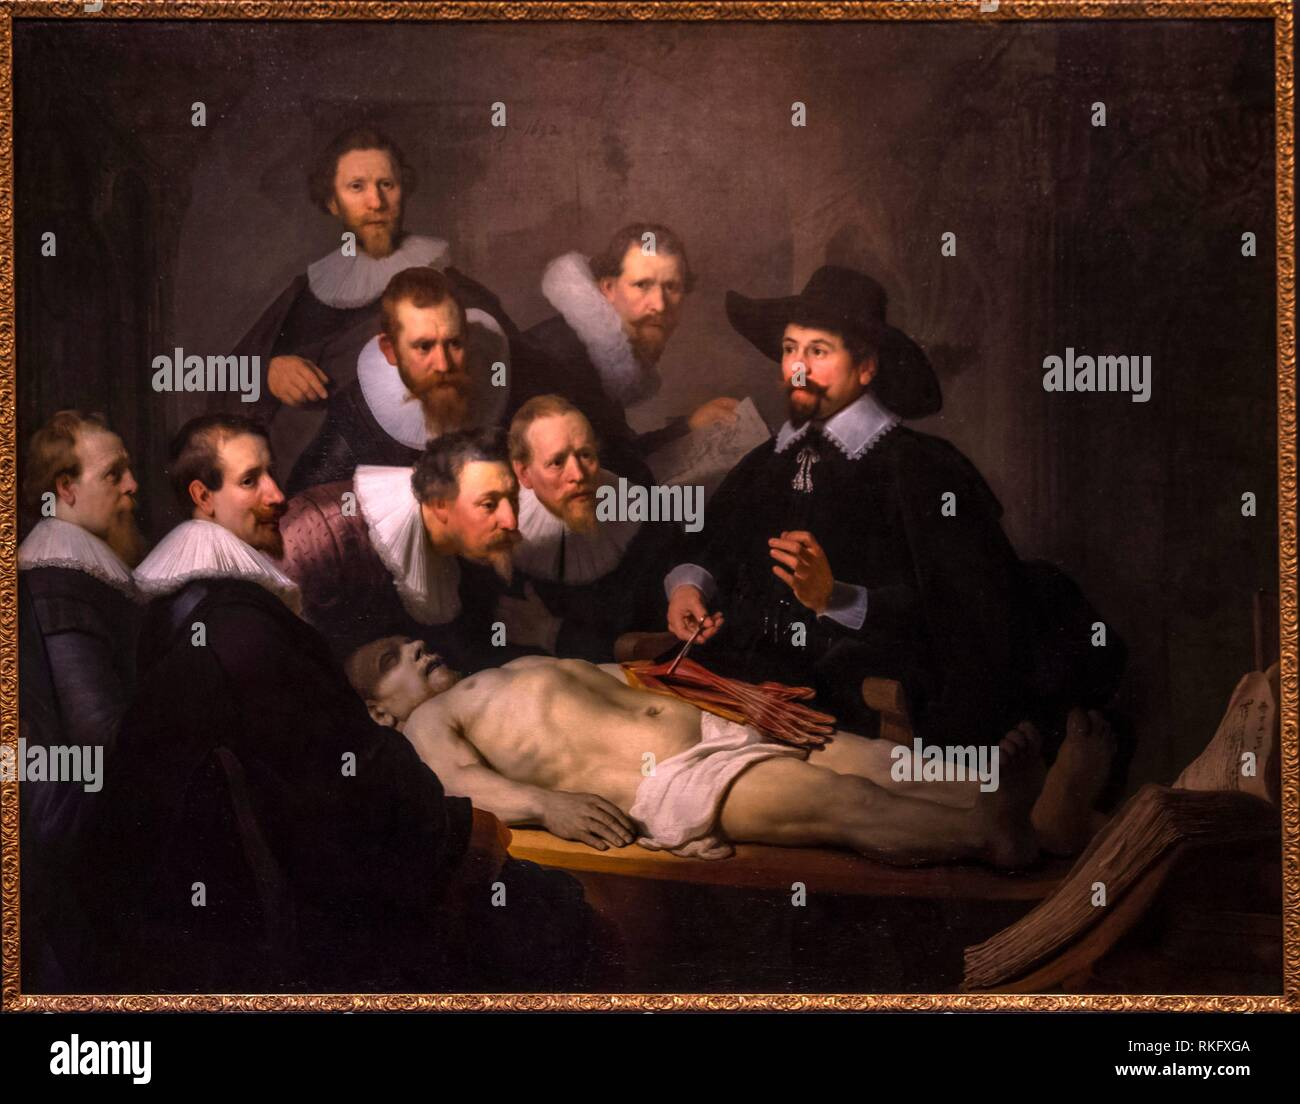 Nedherlands, Den Haag, Mauritshuis Museum: ''The Anaamtomy Lesson od Dr. Nicolaes Tulp'' By Rembrandt, 1632. - Stock Image